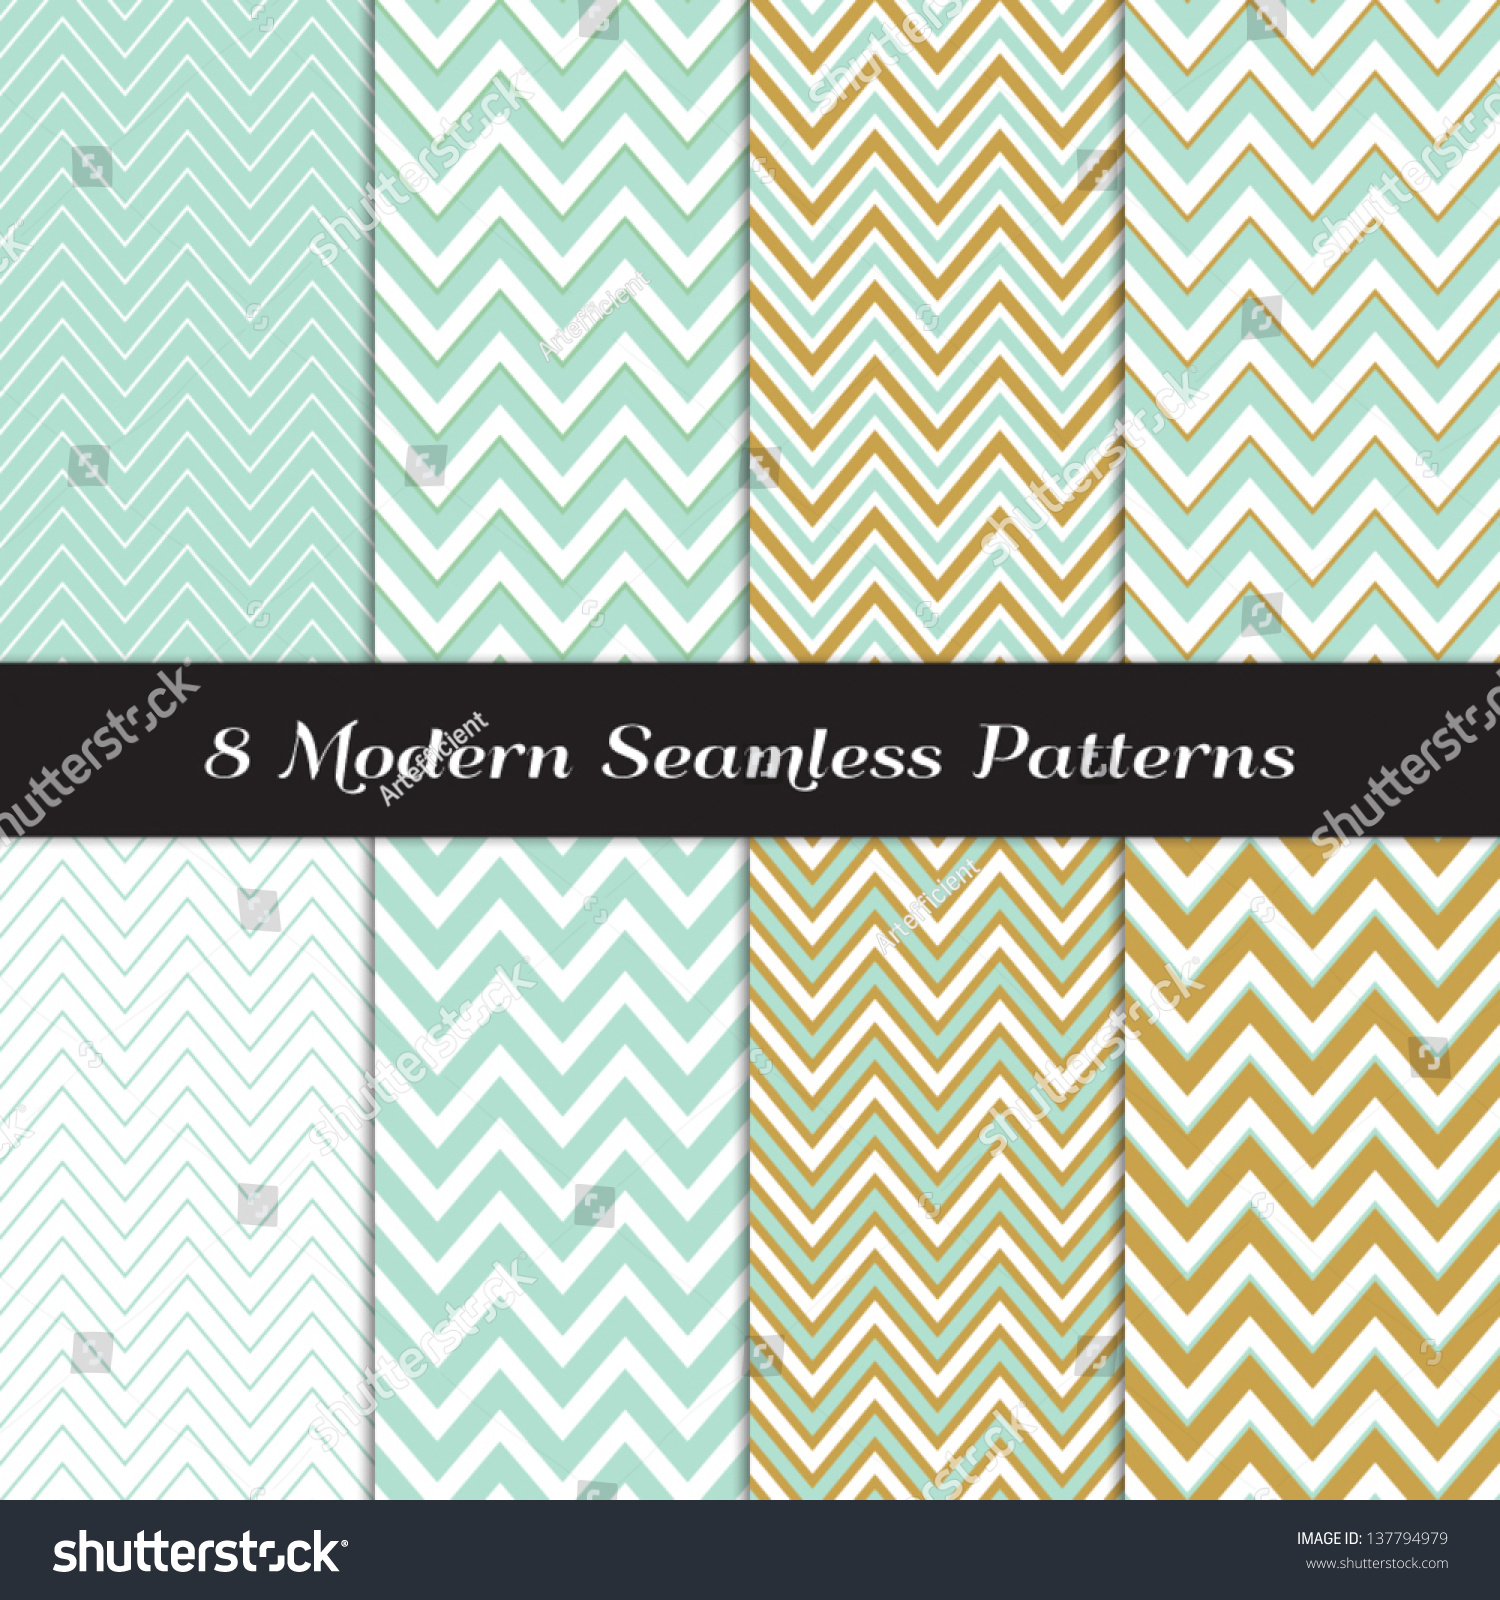 Pics photos merry christmas argyle twitter backgrounds - Green Mint And Gold Chevron And Argyle Seamless Patterns Pattern Swatches Included And Made With